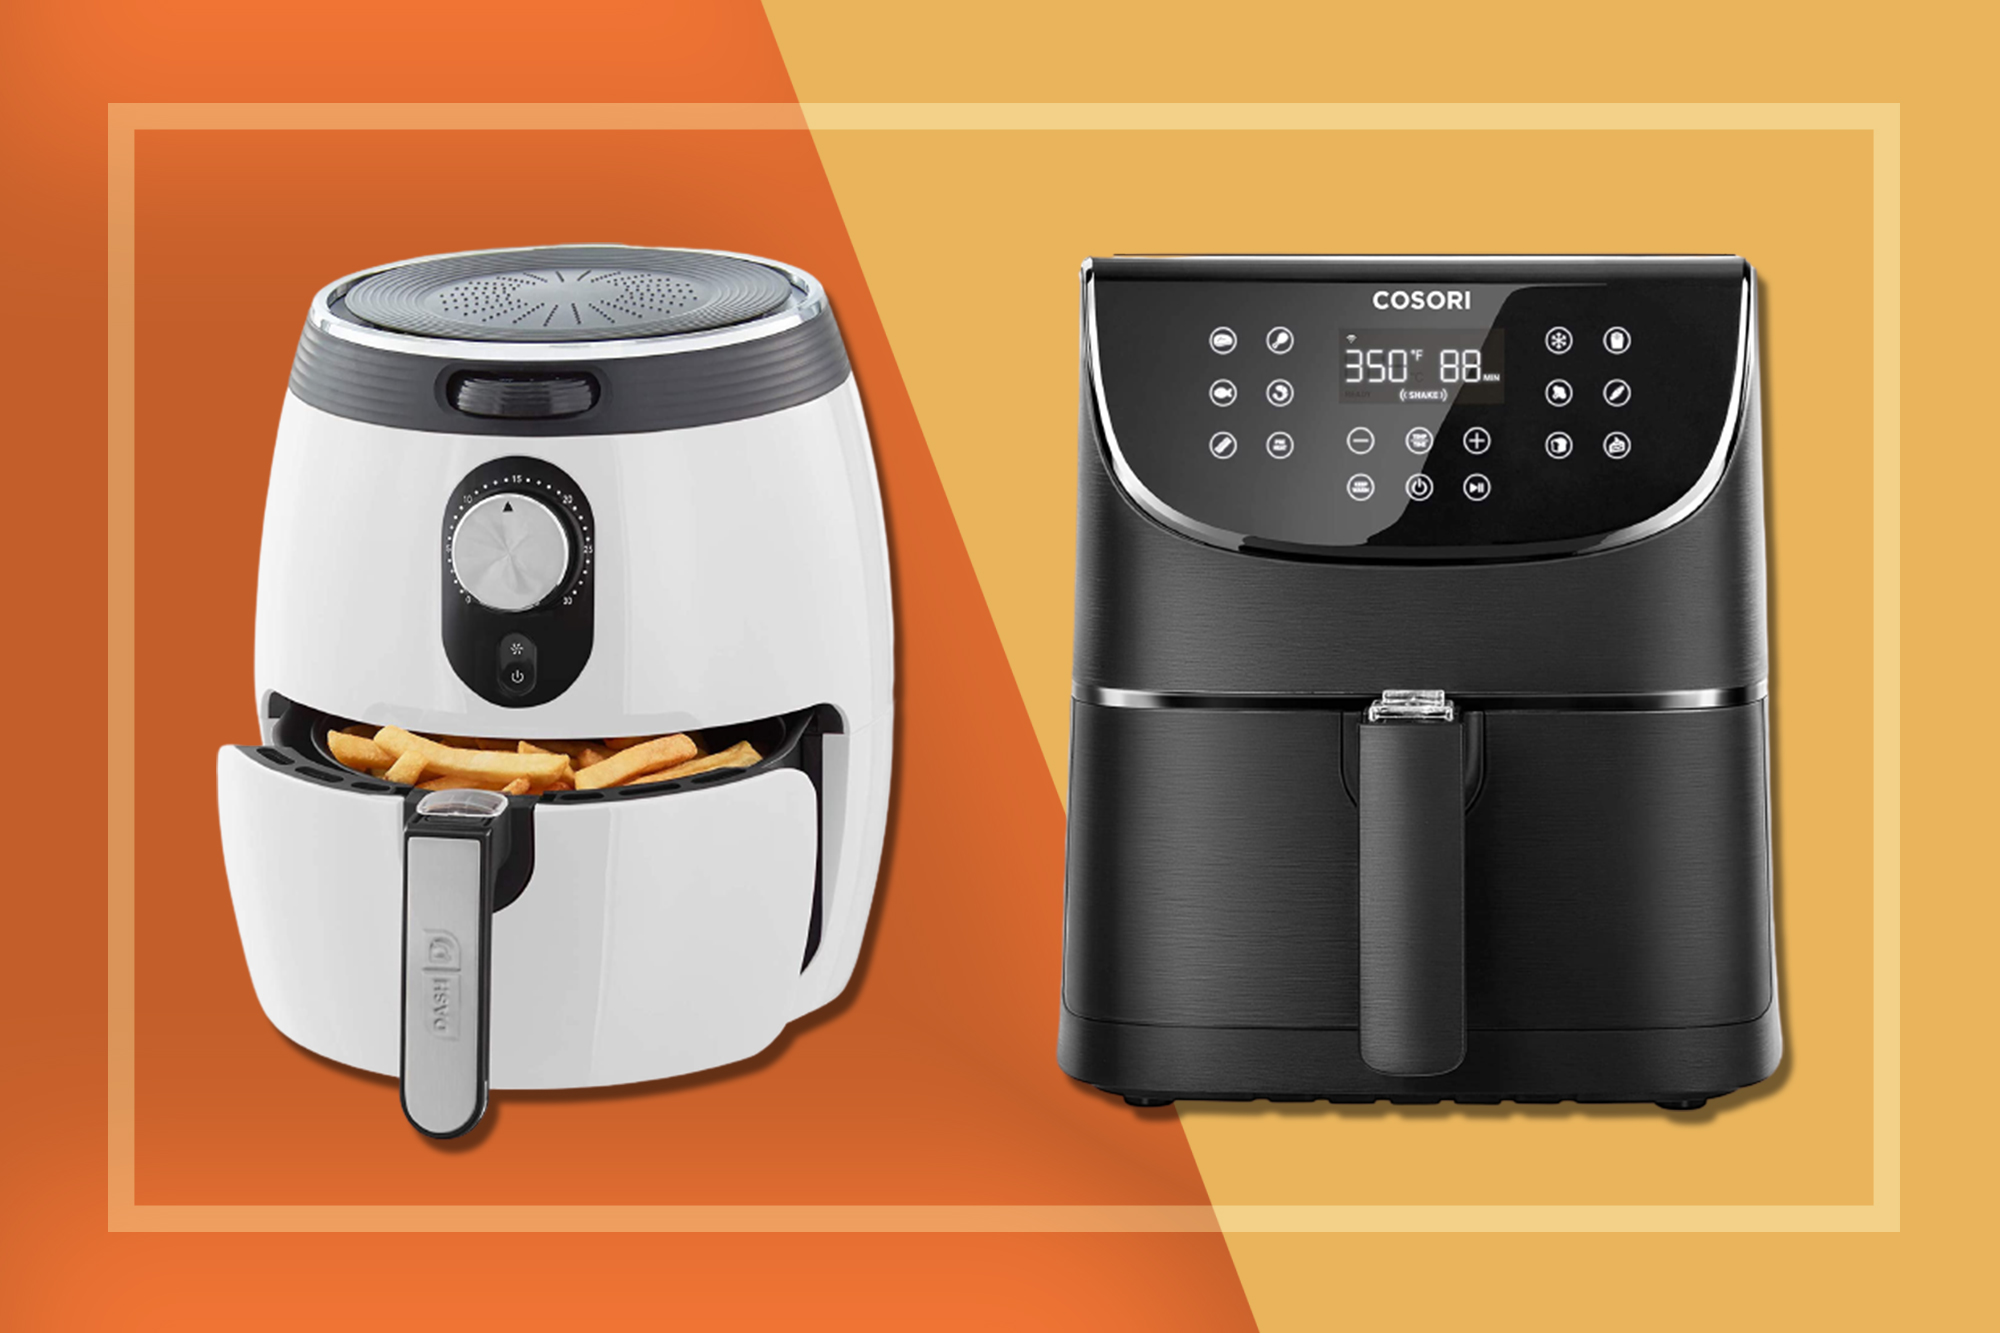 prime day air fryer deals